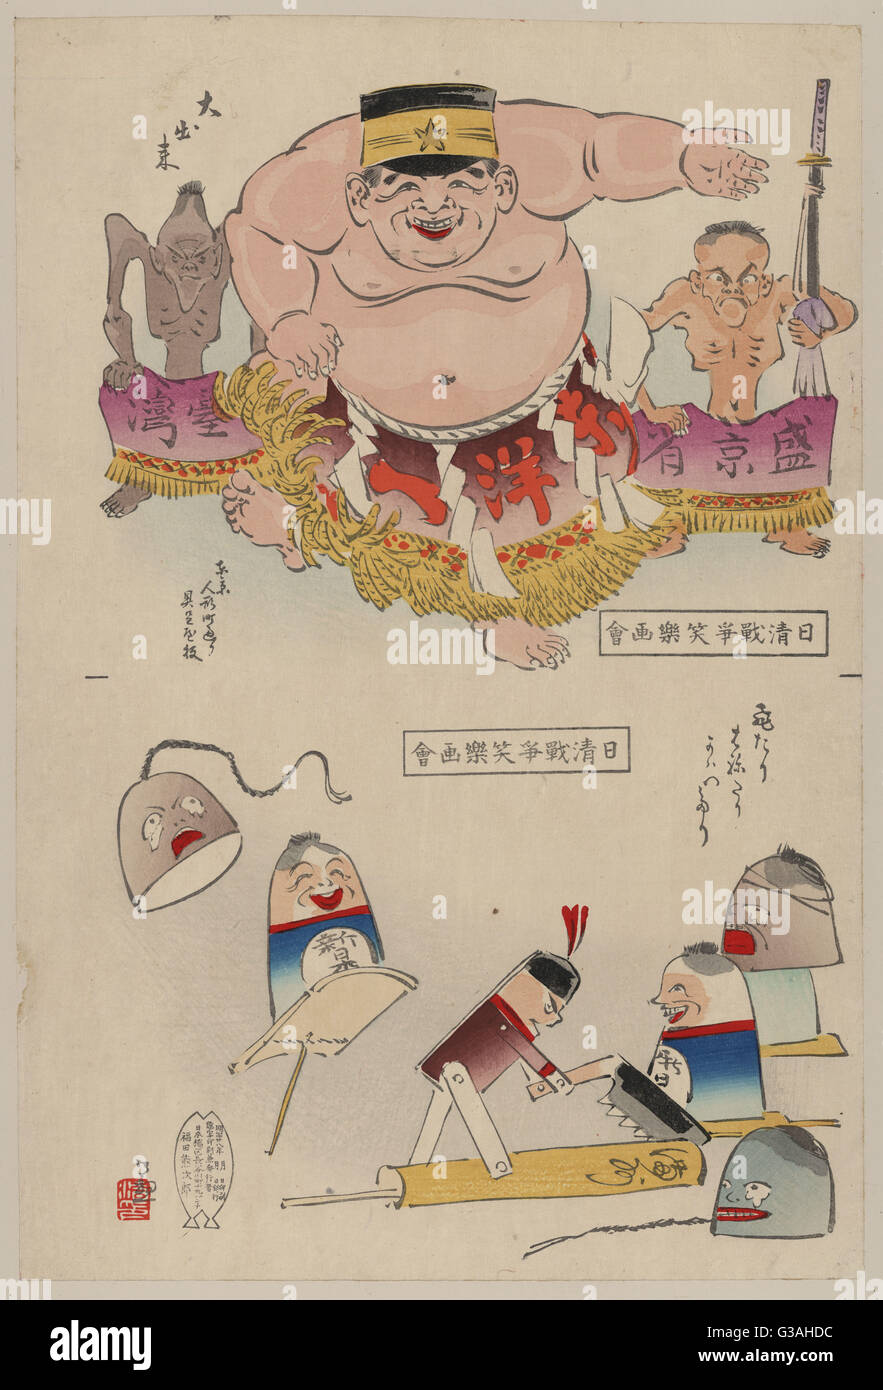 Humorous pictures depicting the Chinese. Date 1895. - Stock Image